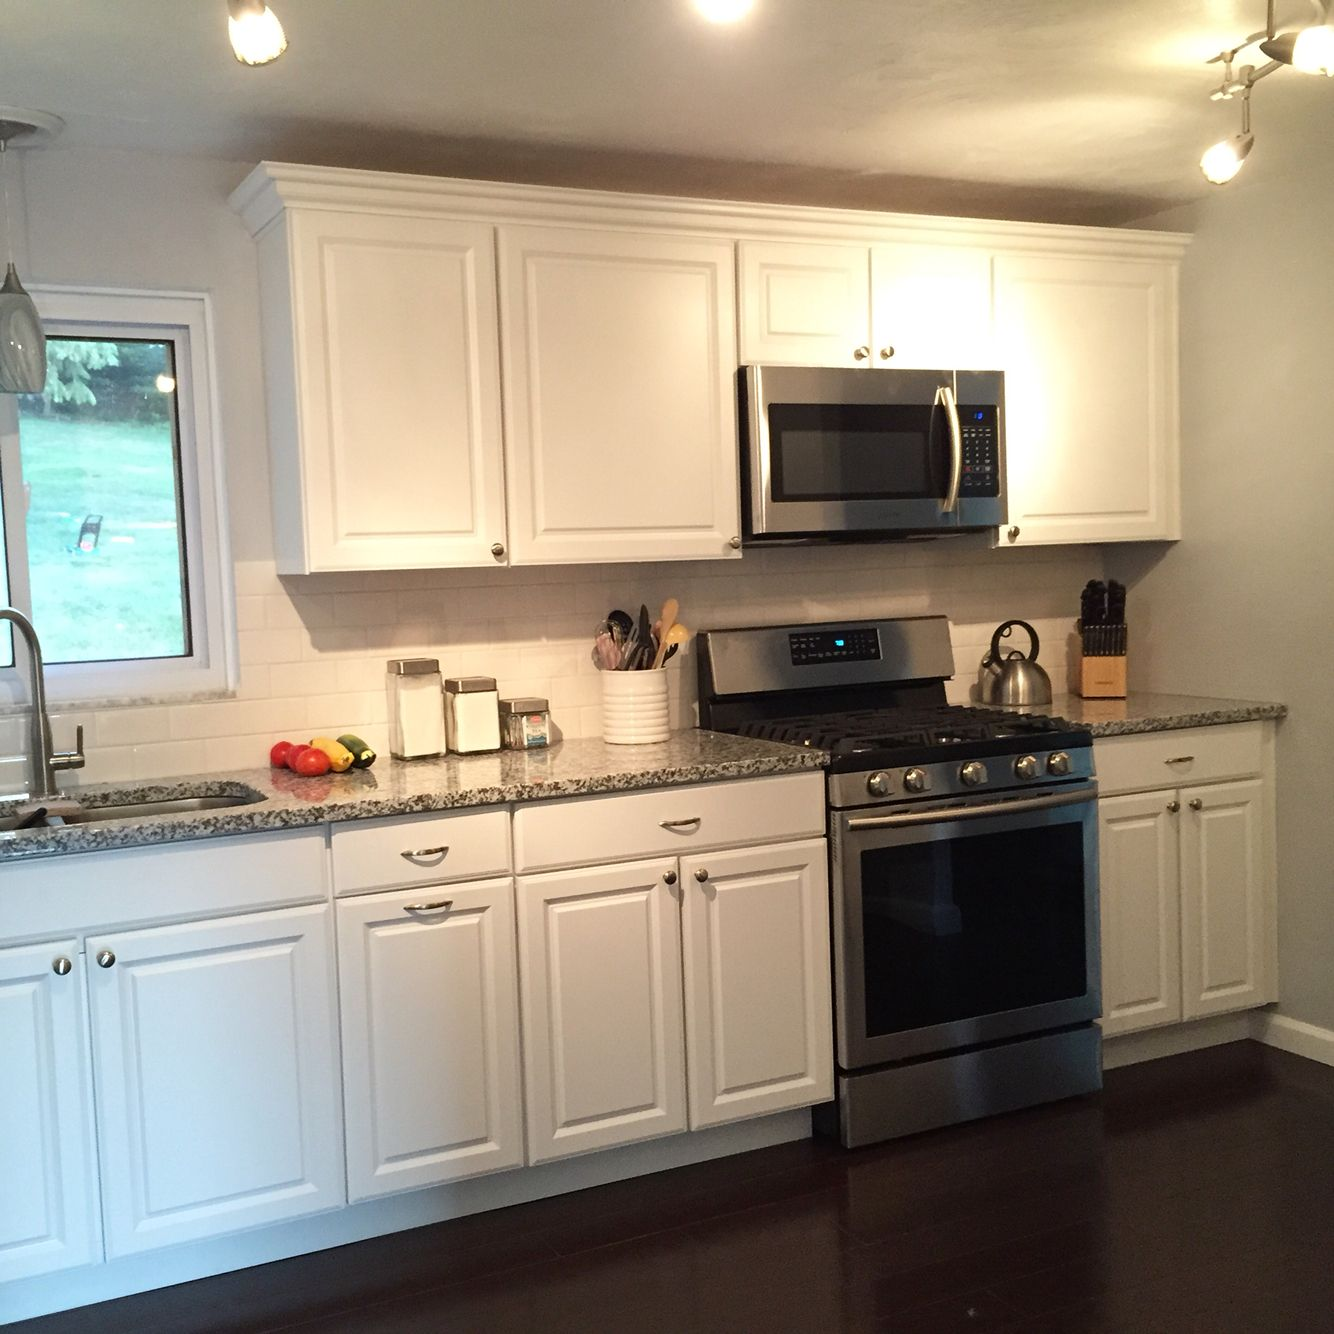 Kitchen Backsplash Granite: Loving Our White Cabinets, Luna Pearl Granite Countertops